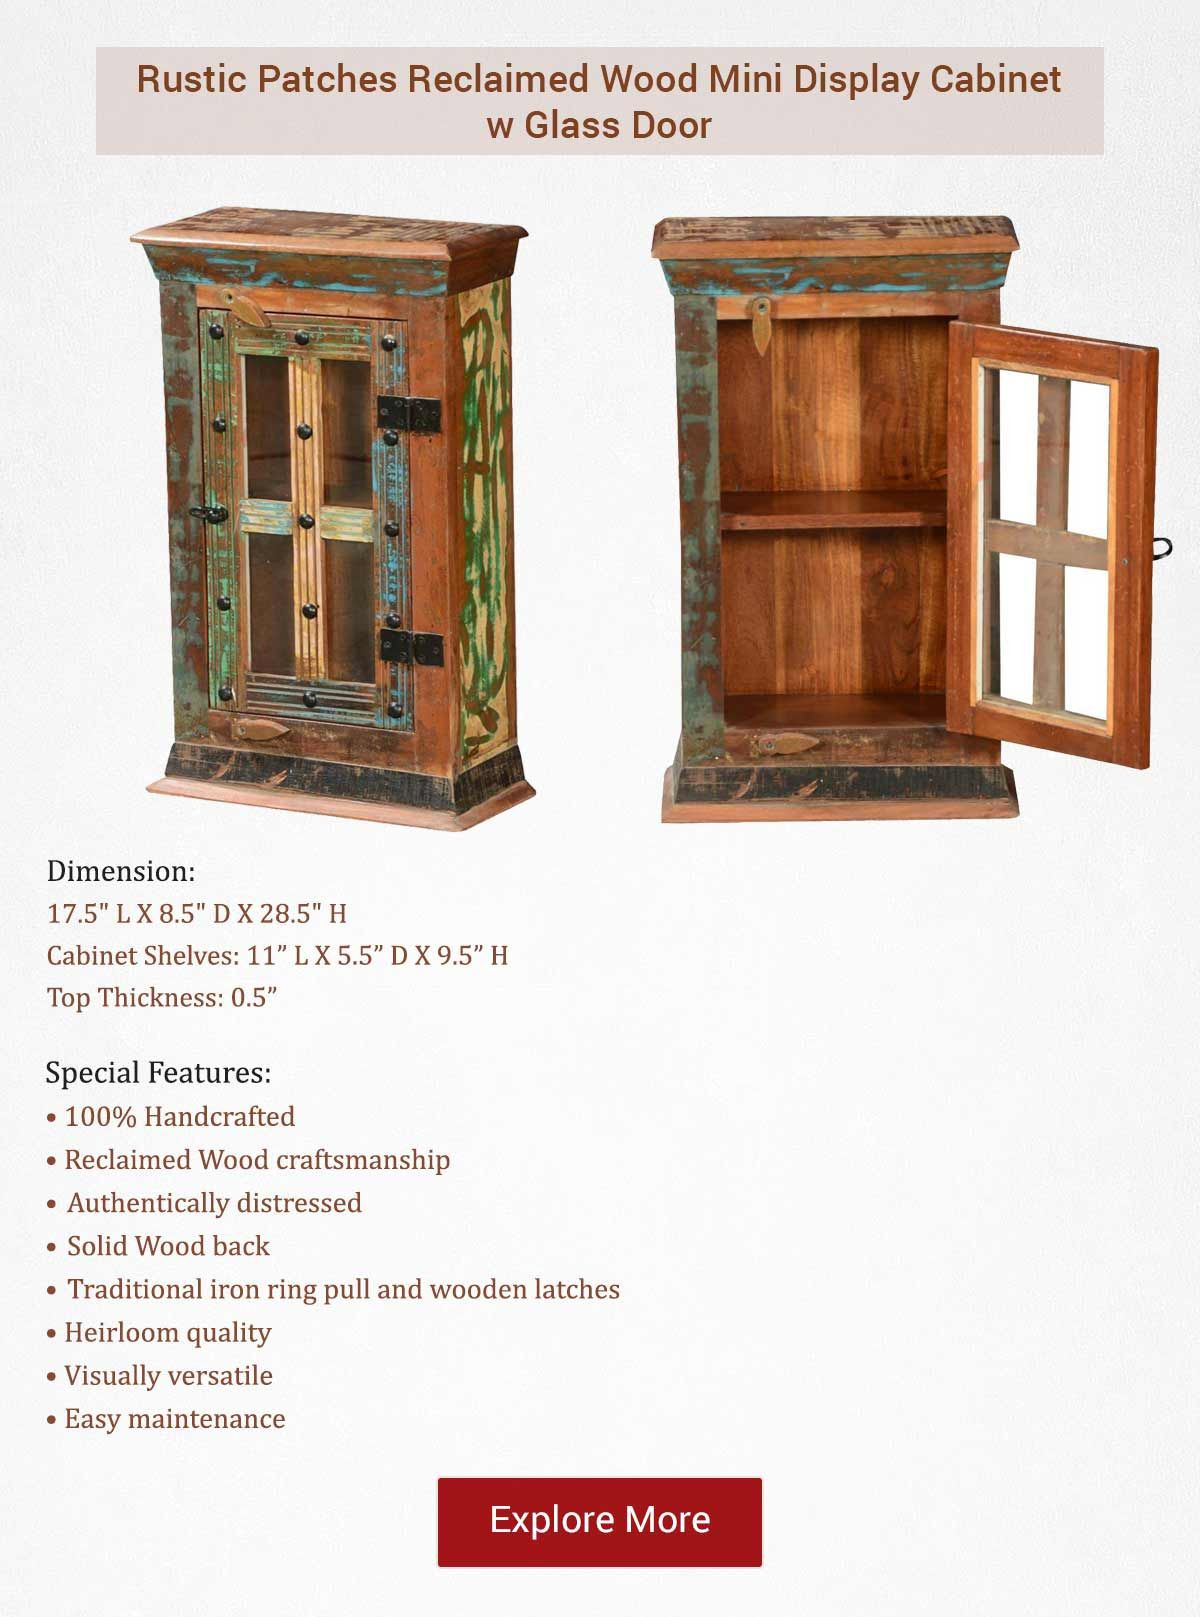 Small Cabinet with Glass Doors Lovely Small Cabinets Can Make A Big Difference Our Rustic Patches